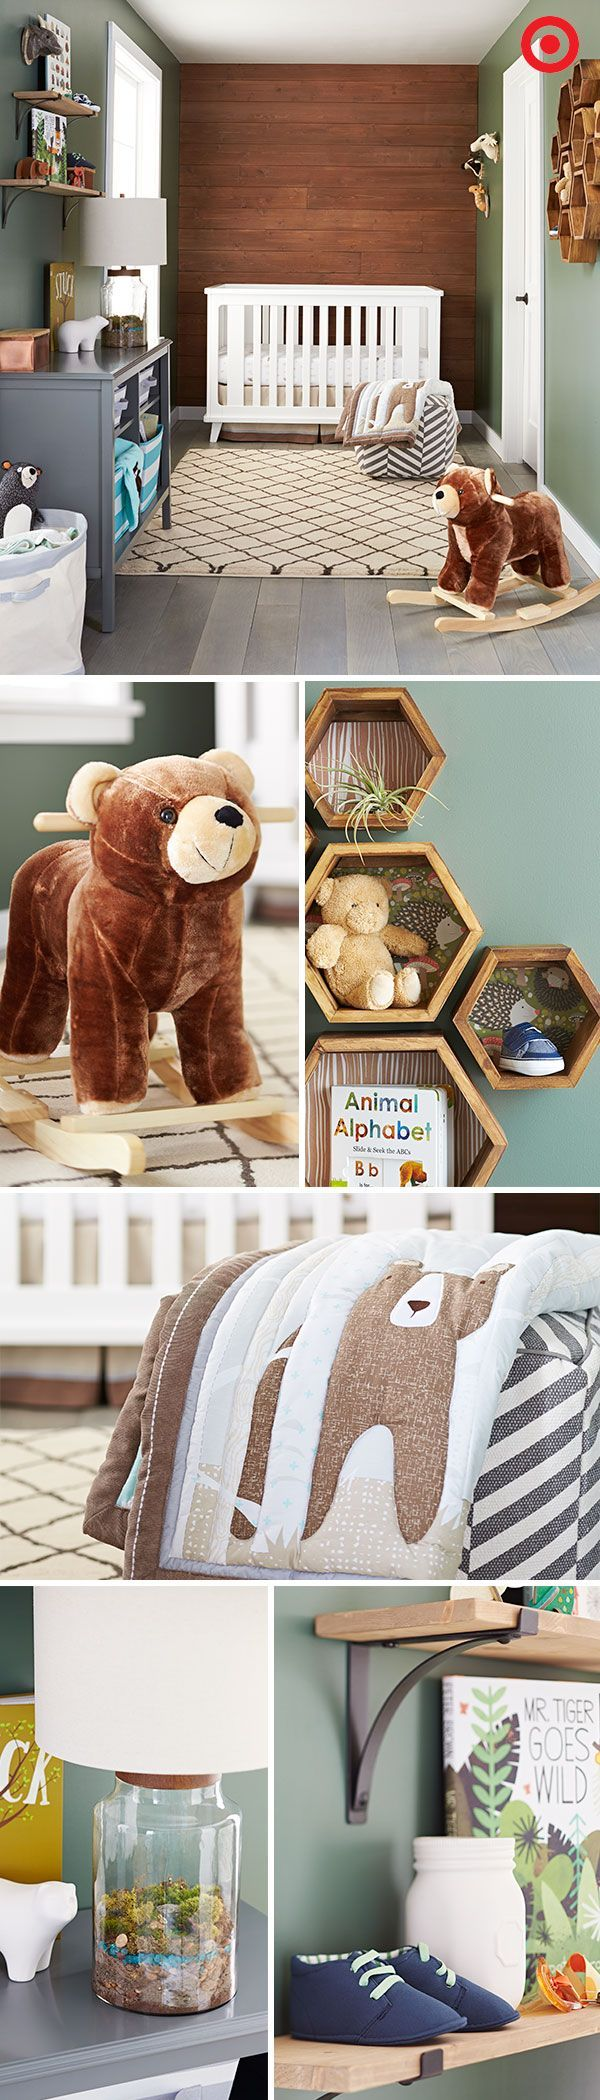 Create a friendly woodland nursery or your baby, filled cozy, personal touches and sweet little cubs. Choose comfortable, functional furniture—convertible crib that grows with your baby and a multitasking pouf that works as extra seating or ottoman? Yes, please! Oh, and don't forget the bear rocker. Your little one will love it!